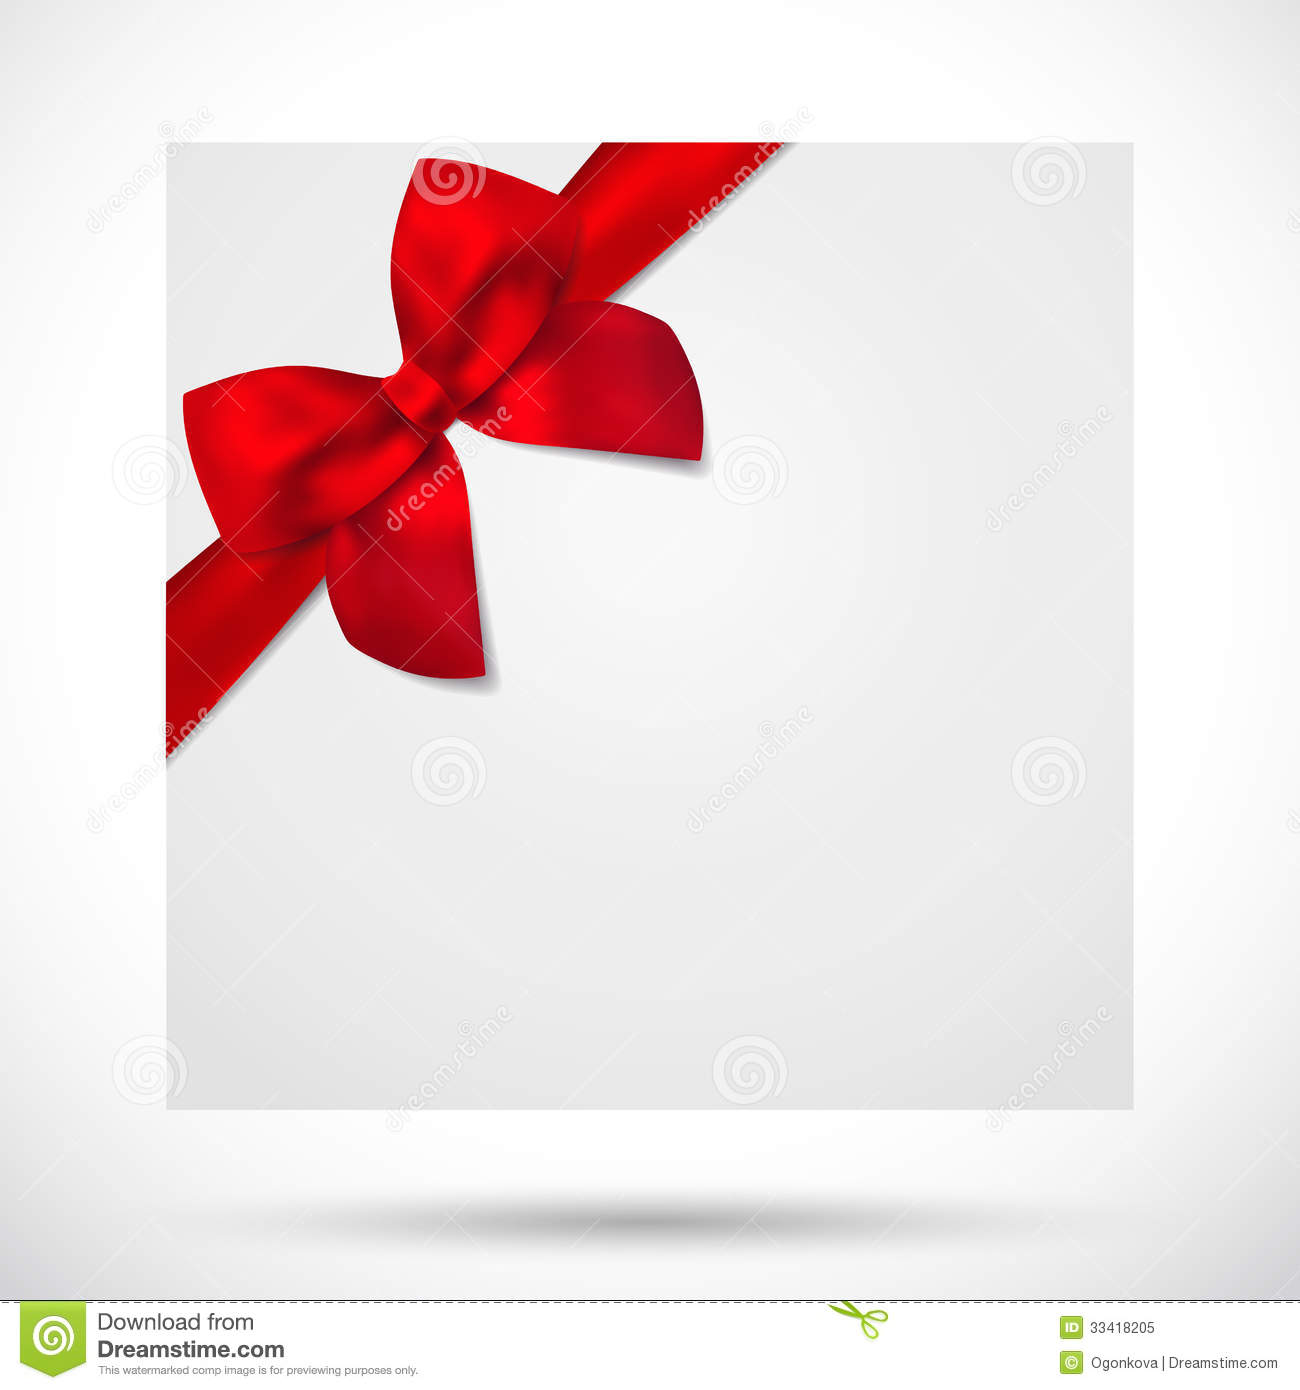 Free christmas gift certificate templates dhavvied bow gift card templates xflitez Choice Image